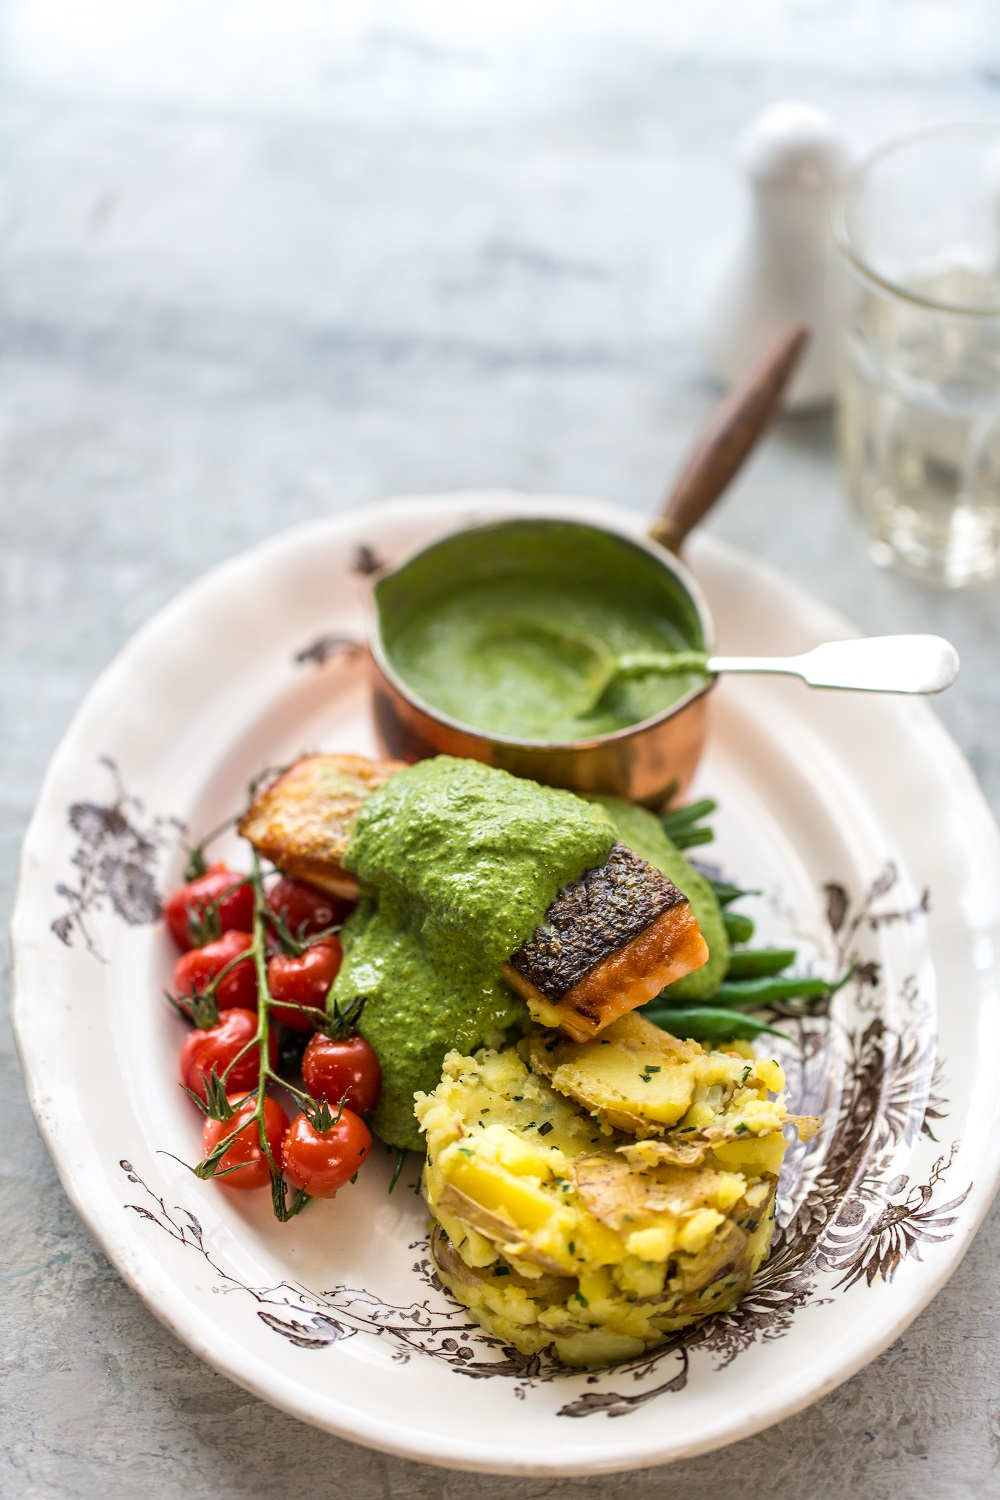 Pan-fried Salmon With Watercress Sauce And Crushed New Potatoes